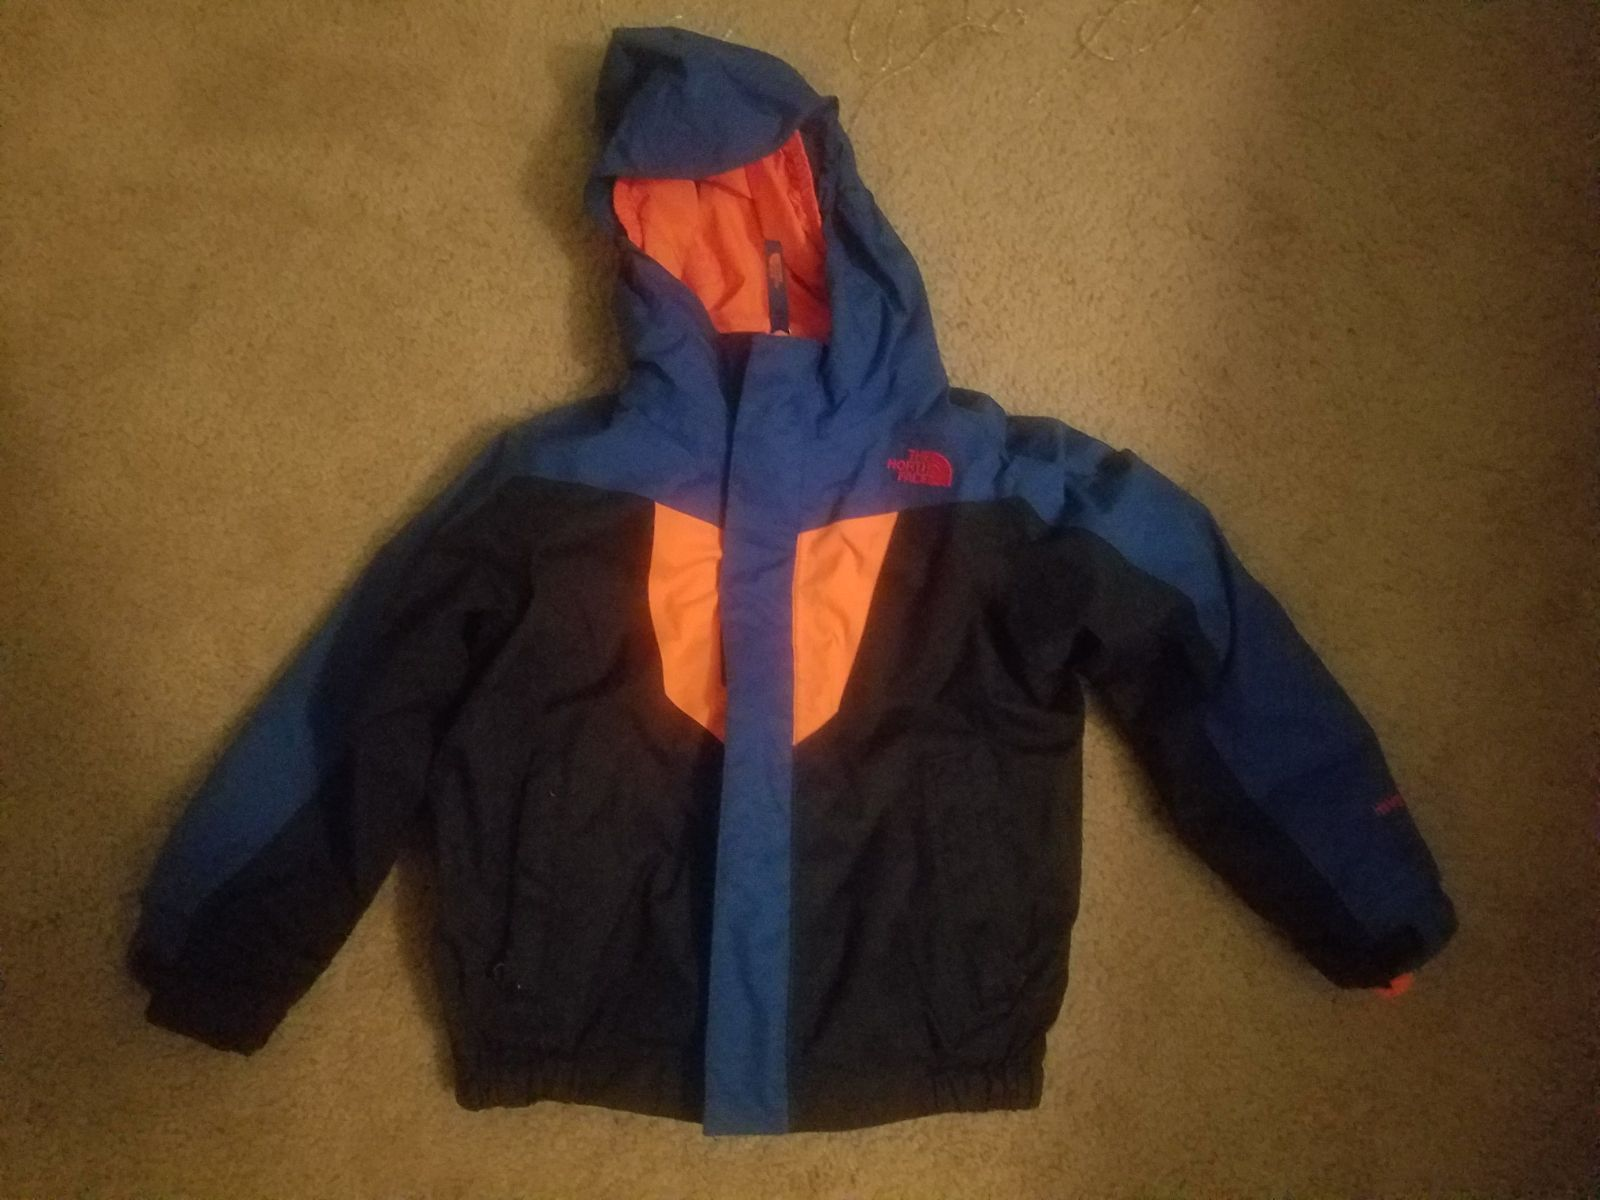 North Face 4t Boys Triclimate Coat That Has Zip In Fleece That Can Be Winter Coat Or Fall Coat Fleece Has Slight Staining Fall Coat The North Face Winter Coat [ 1200 x 1600 Pixel ]